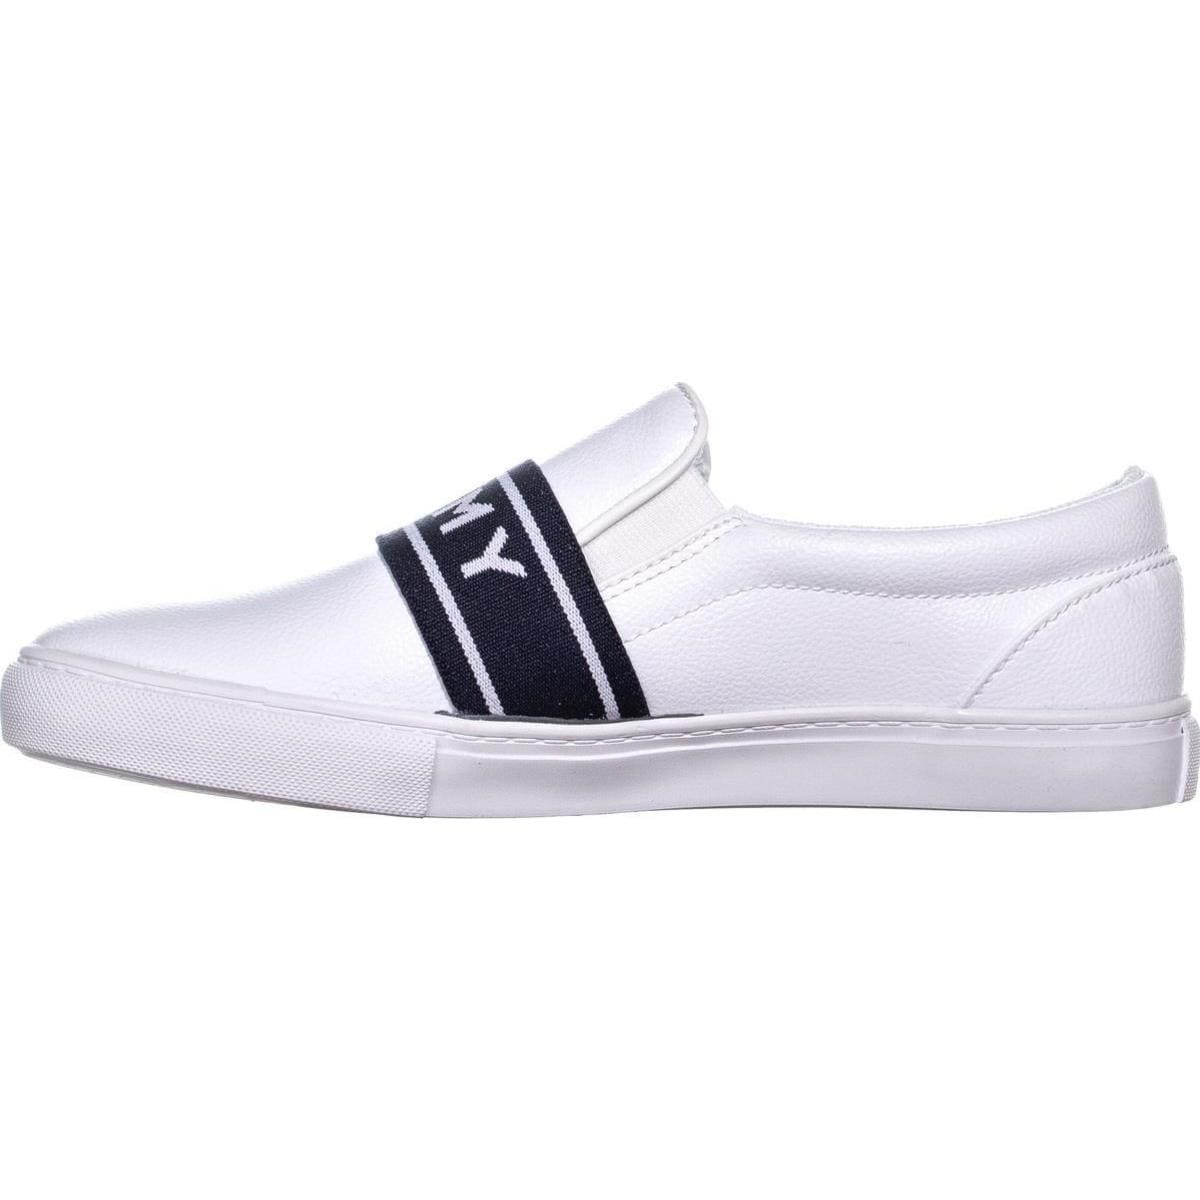 e1a04f24 Shop Tommy Hilfiger Lourena Slip On Sneakers, White Multi - Free Shipping  On Orders Over $45 - Overstock - 24218745